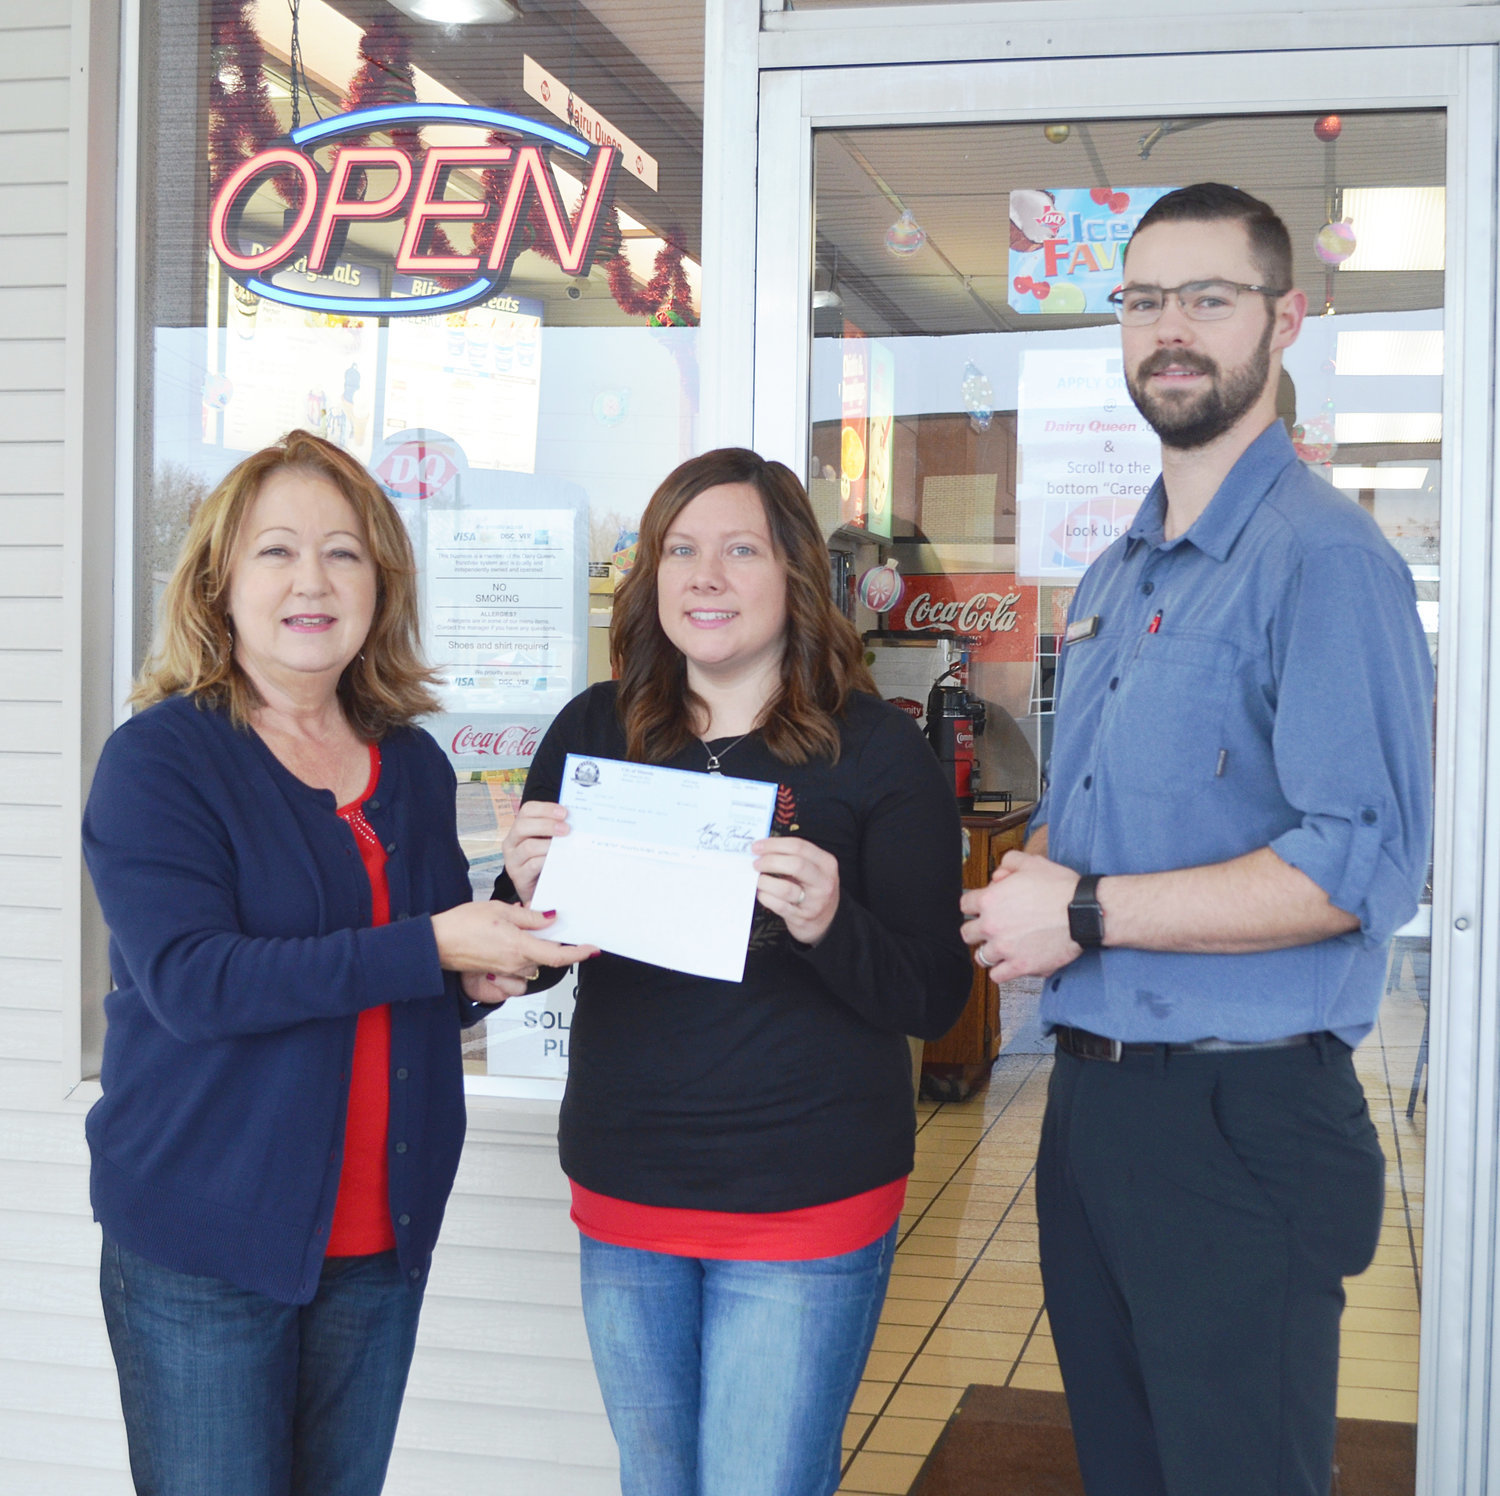 Rebecca Bohannan, center, was the winner of $500 from the Shop Local Mineola campaign. While shopping in downtown Mineola, she visited Dairy Queen and her receipt was the first one drawn as part of this year's contest. Also pictured is Doris Newman, director of the Mineola Main Street program, and Dairy Queen owner Daniel Tucker. The campaign covers purchases made between Nov. 23 and Dec. 28.